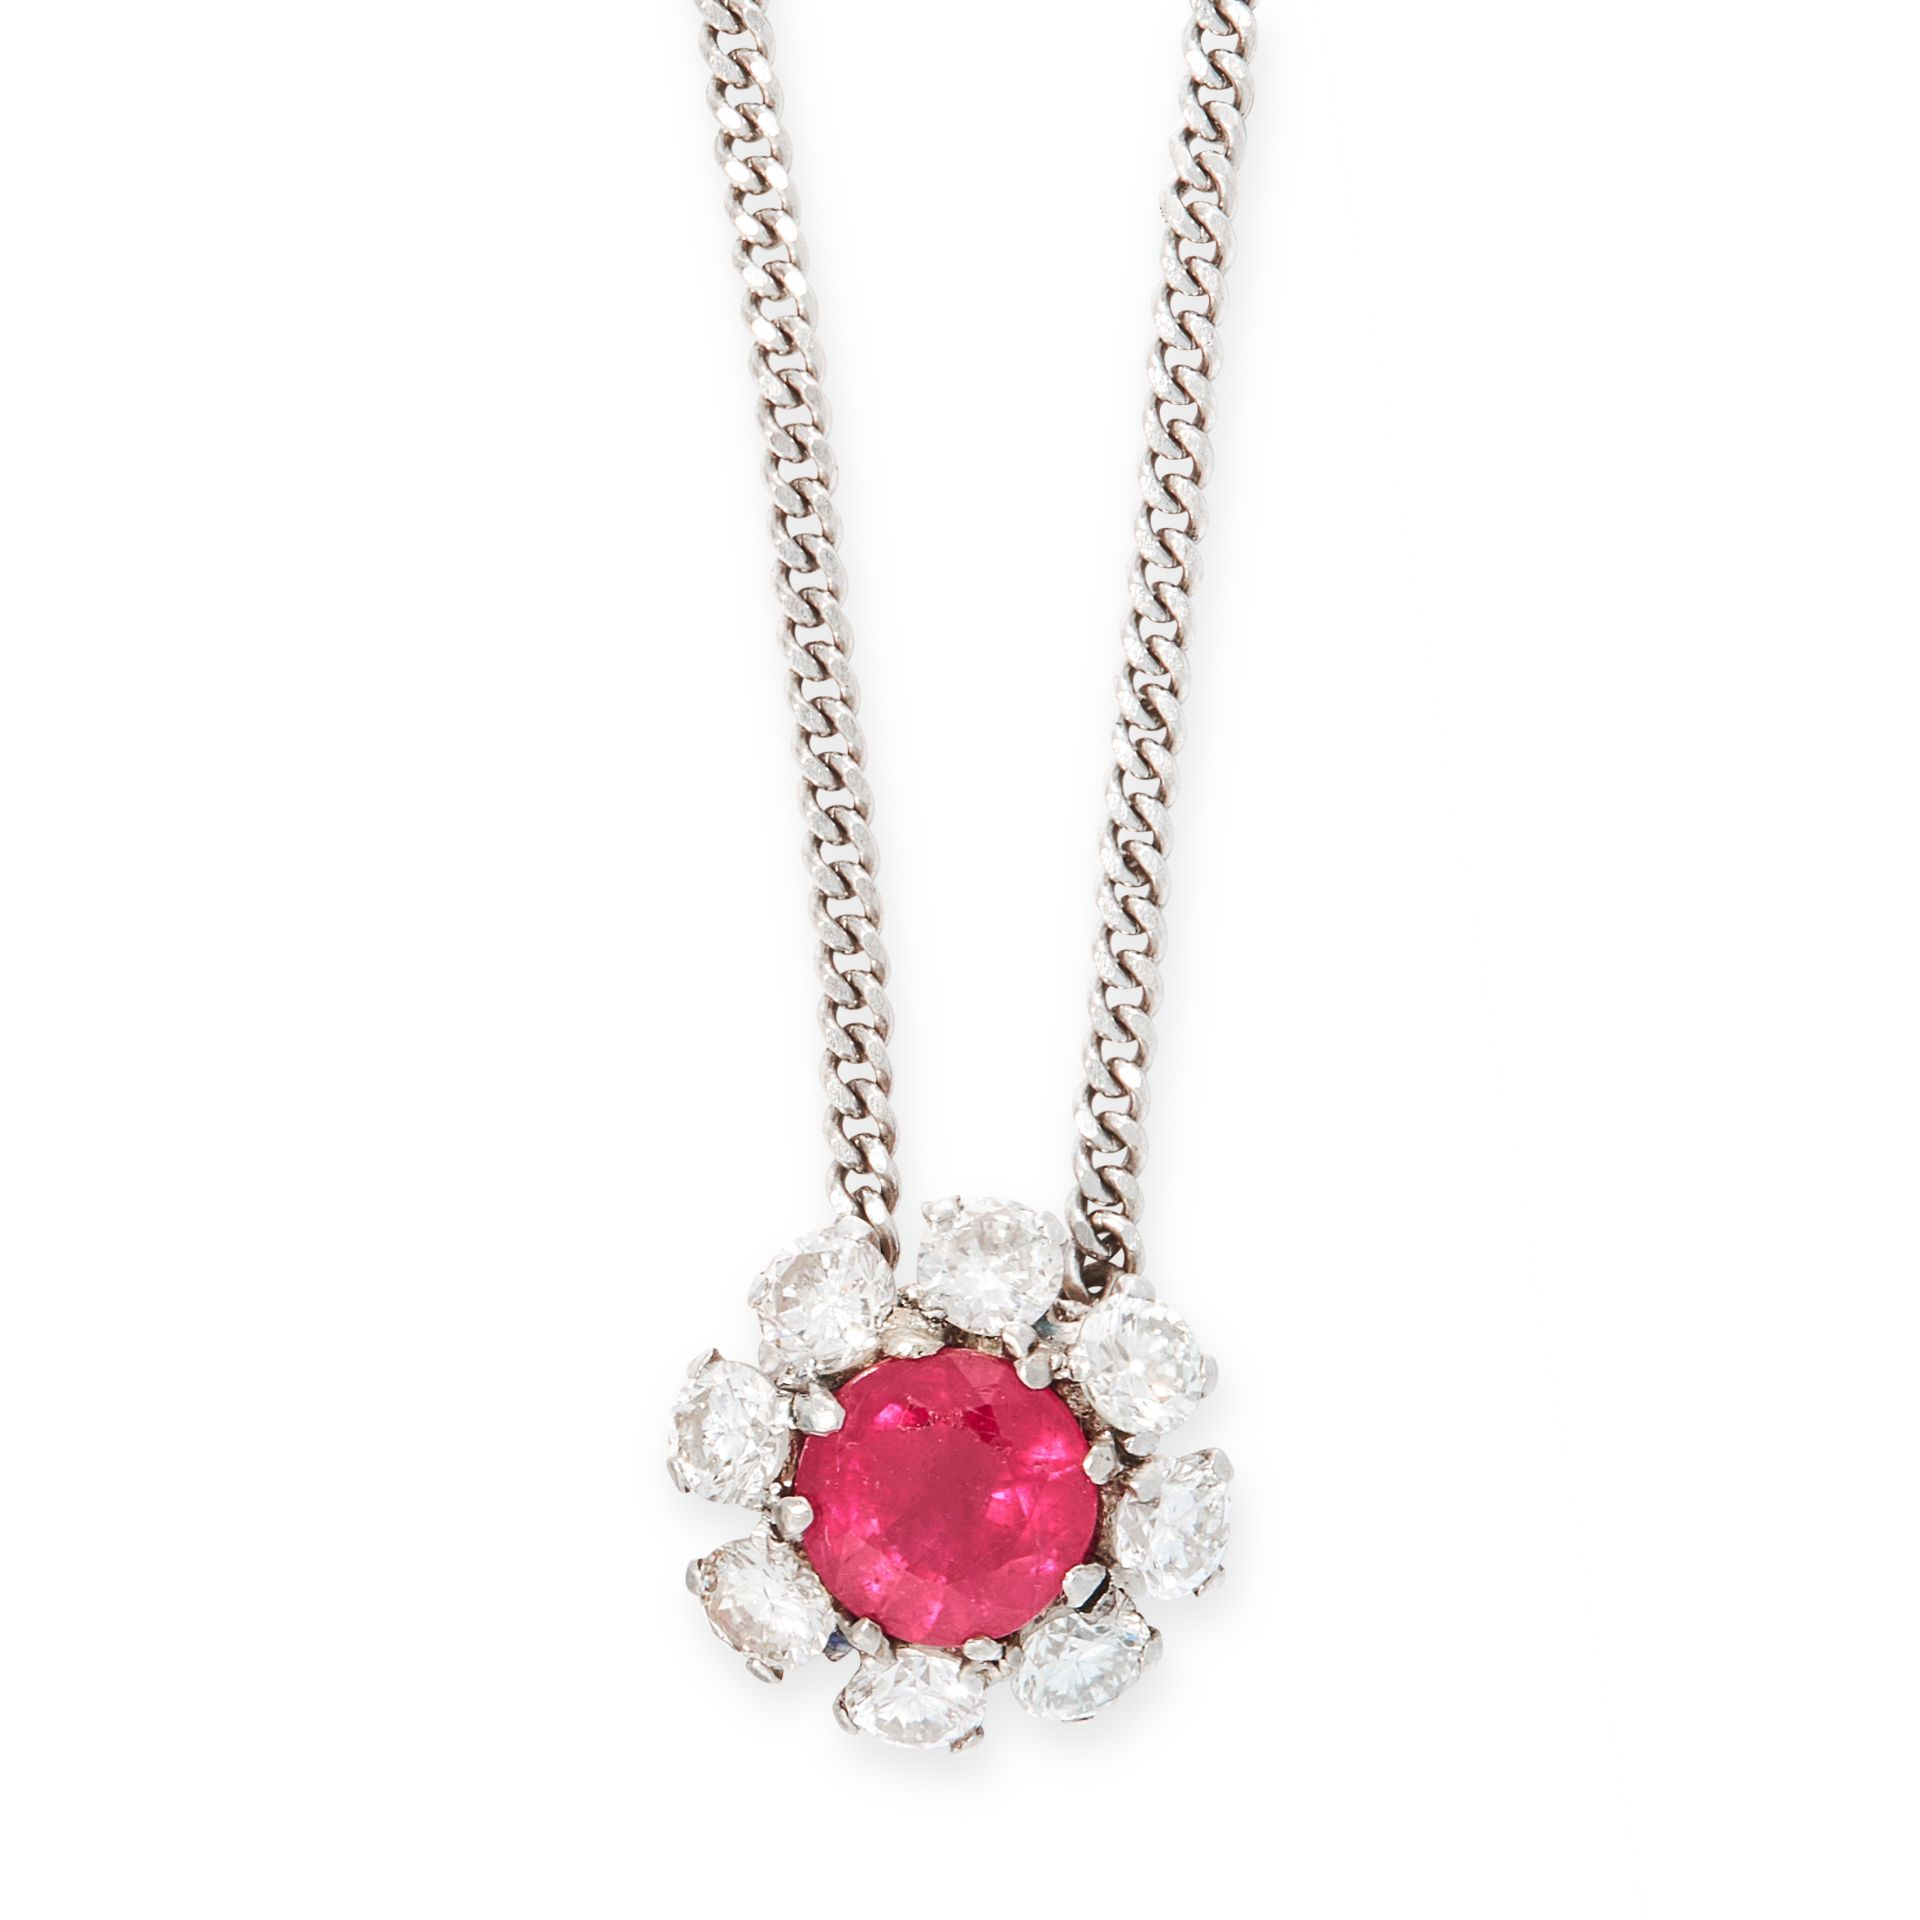 A RUBY AND DIAMOND PENDANT NECKLACE in 18ct white gold, set with a round cut ruby of 1.22 carats